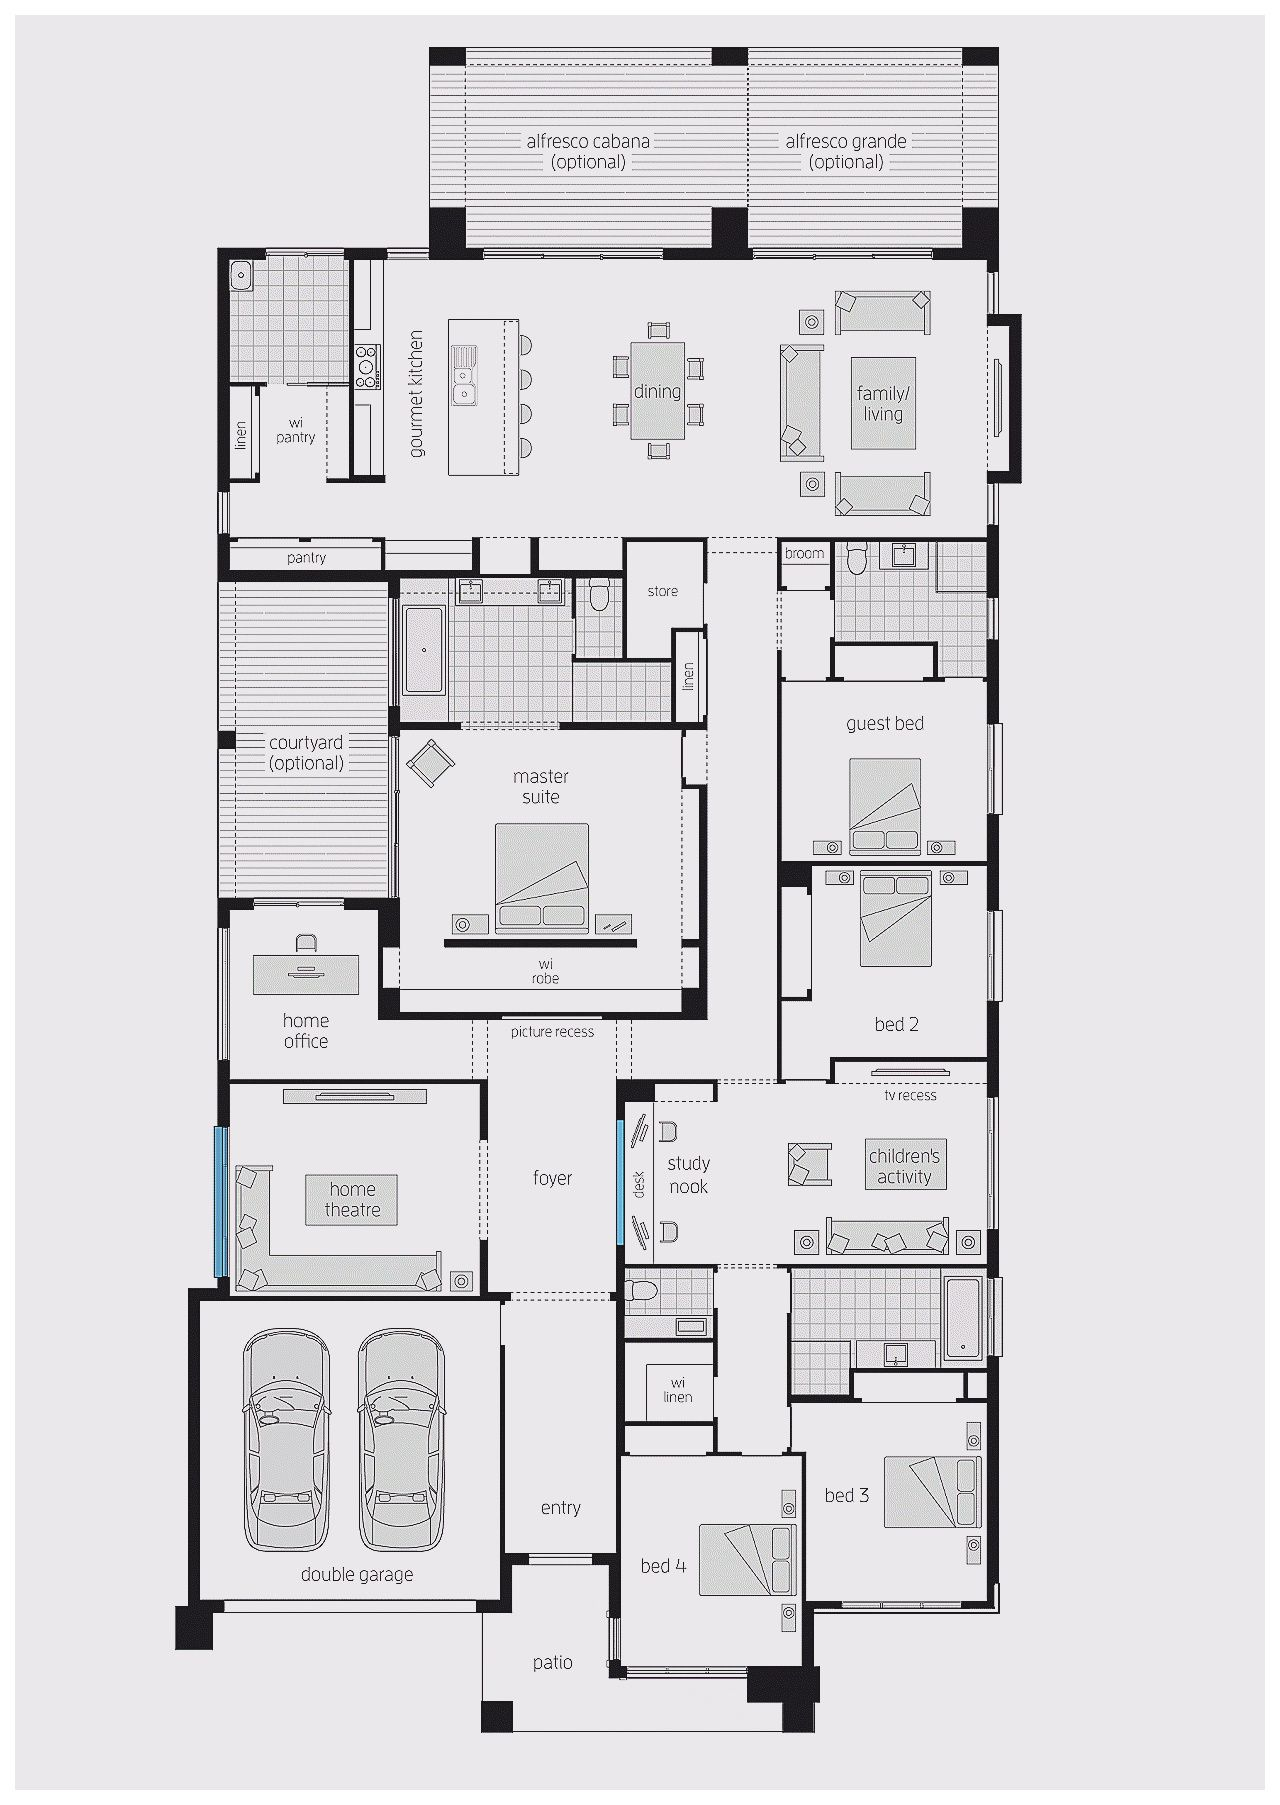 Large Family Home Plans To Build A Large Family Home You Should First Learn How To Build A Home That Has Lots Of Rooms While Not All Homes Are Large I